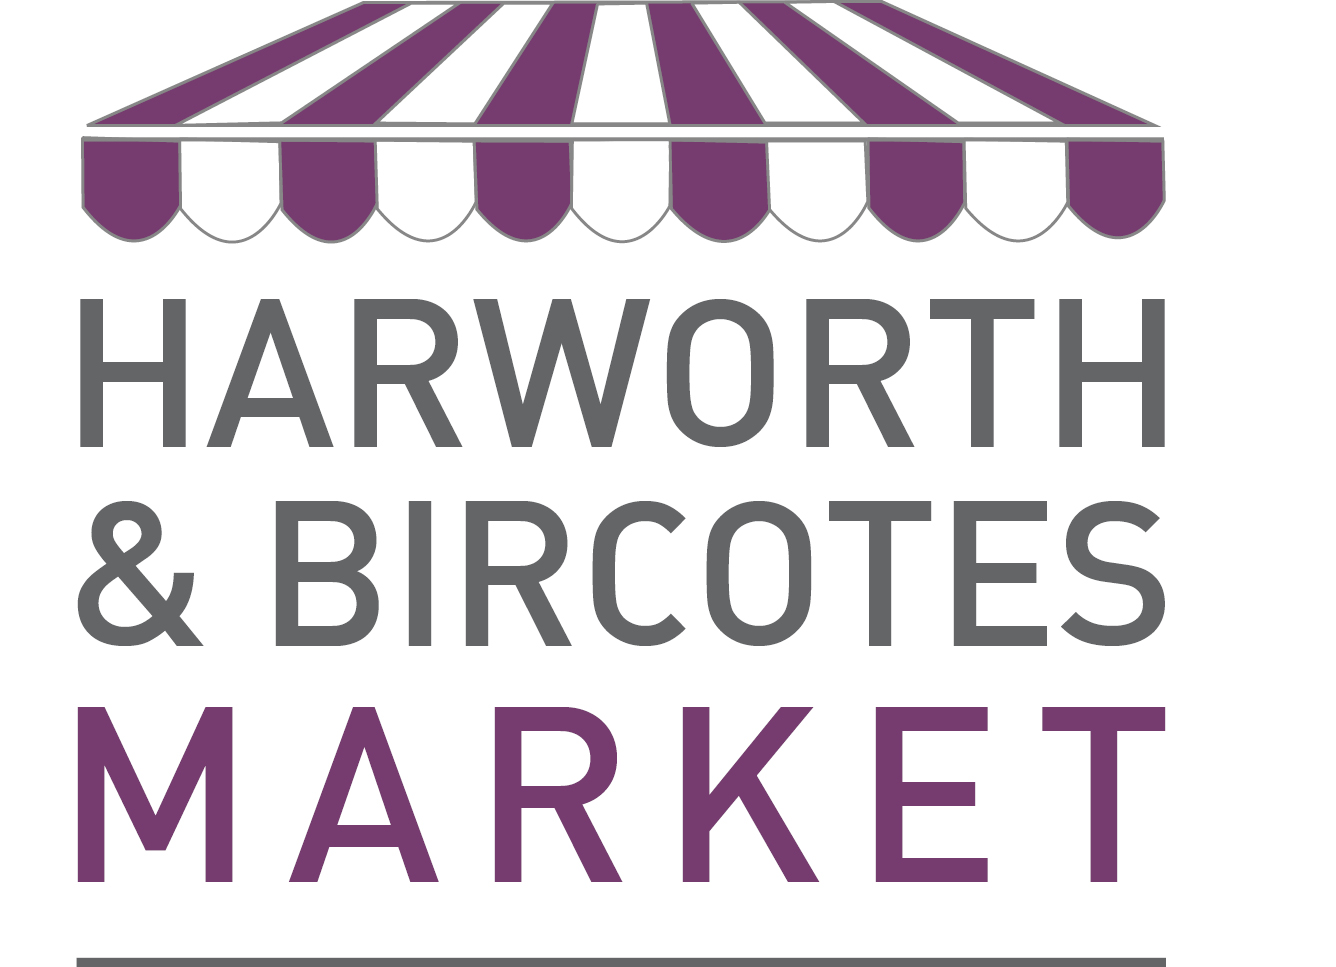 New Market to launch in Harworth and Bircotes